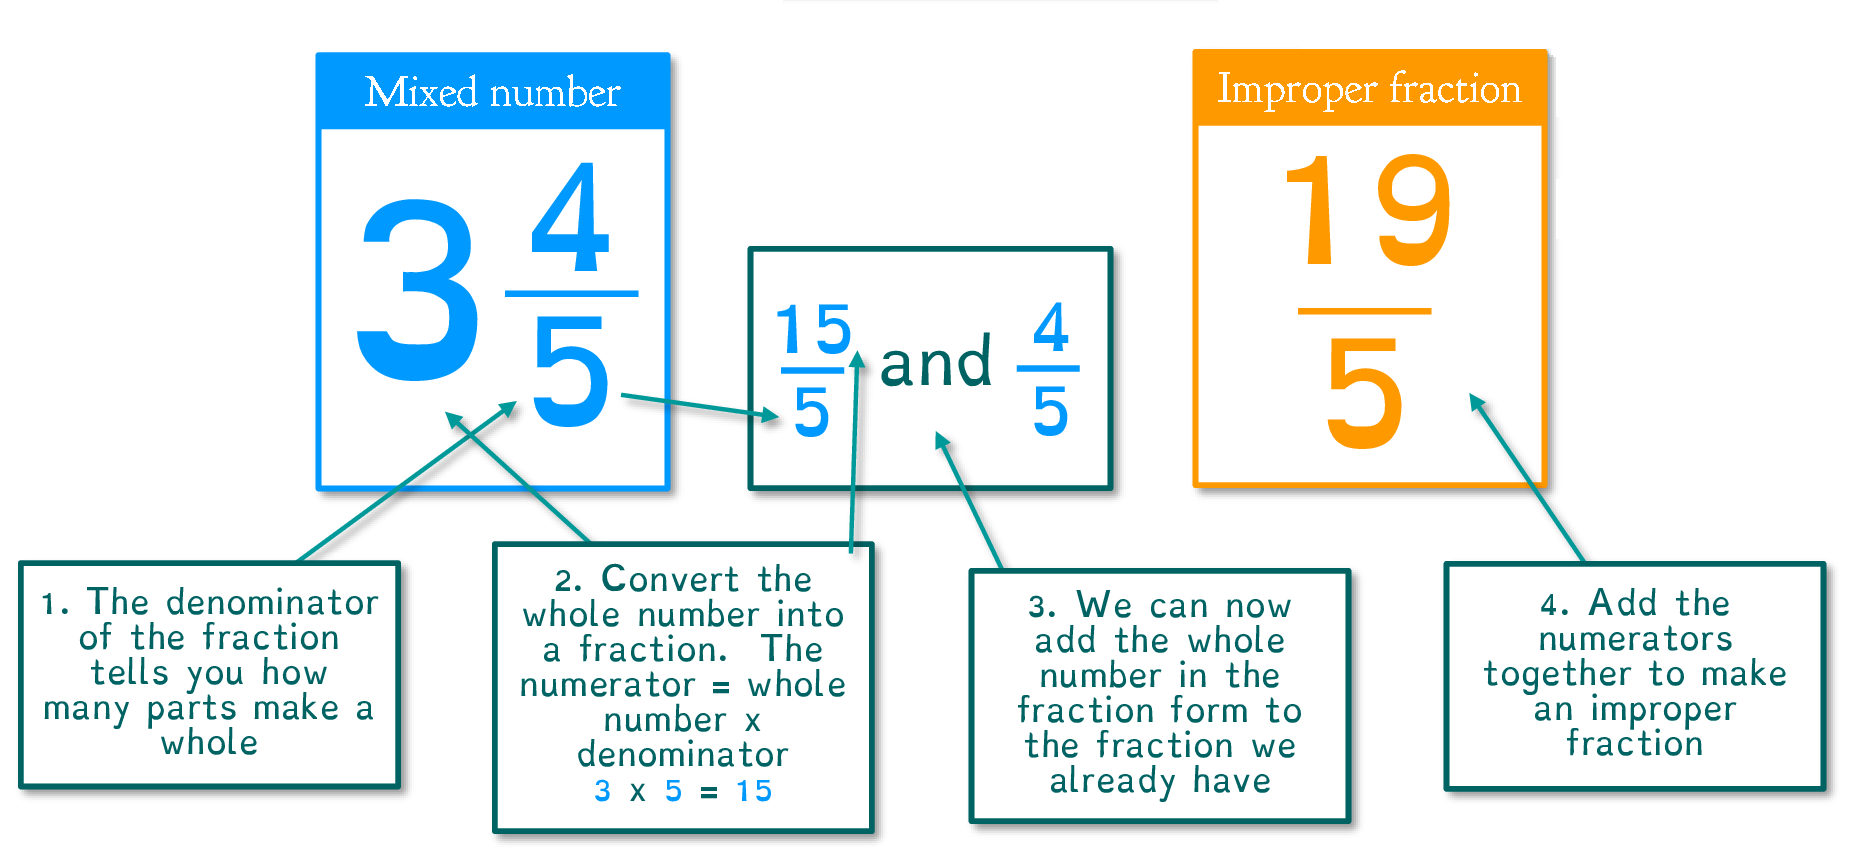 Change a Mixed Number to an Improper Fraction